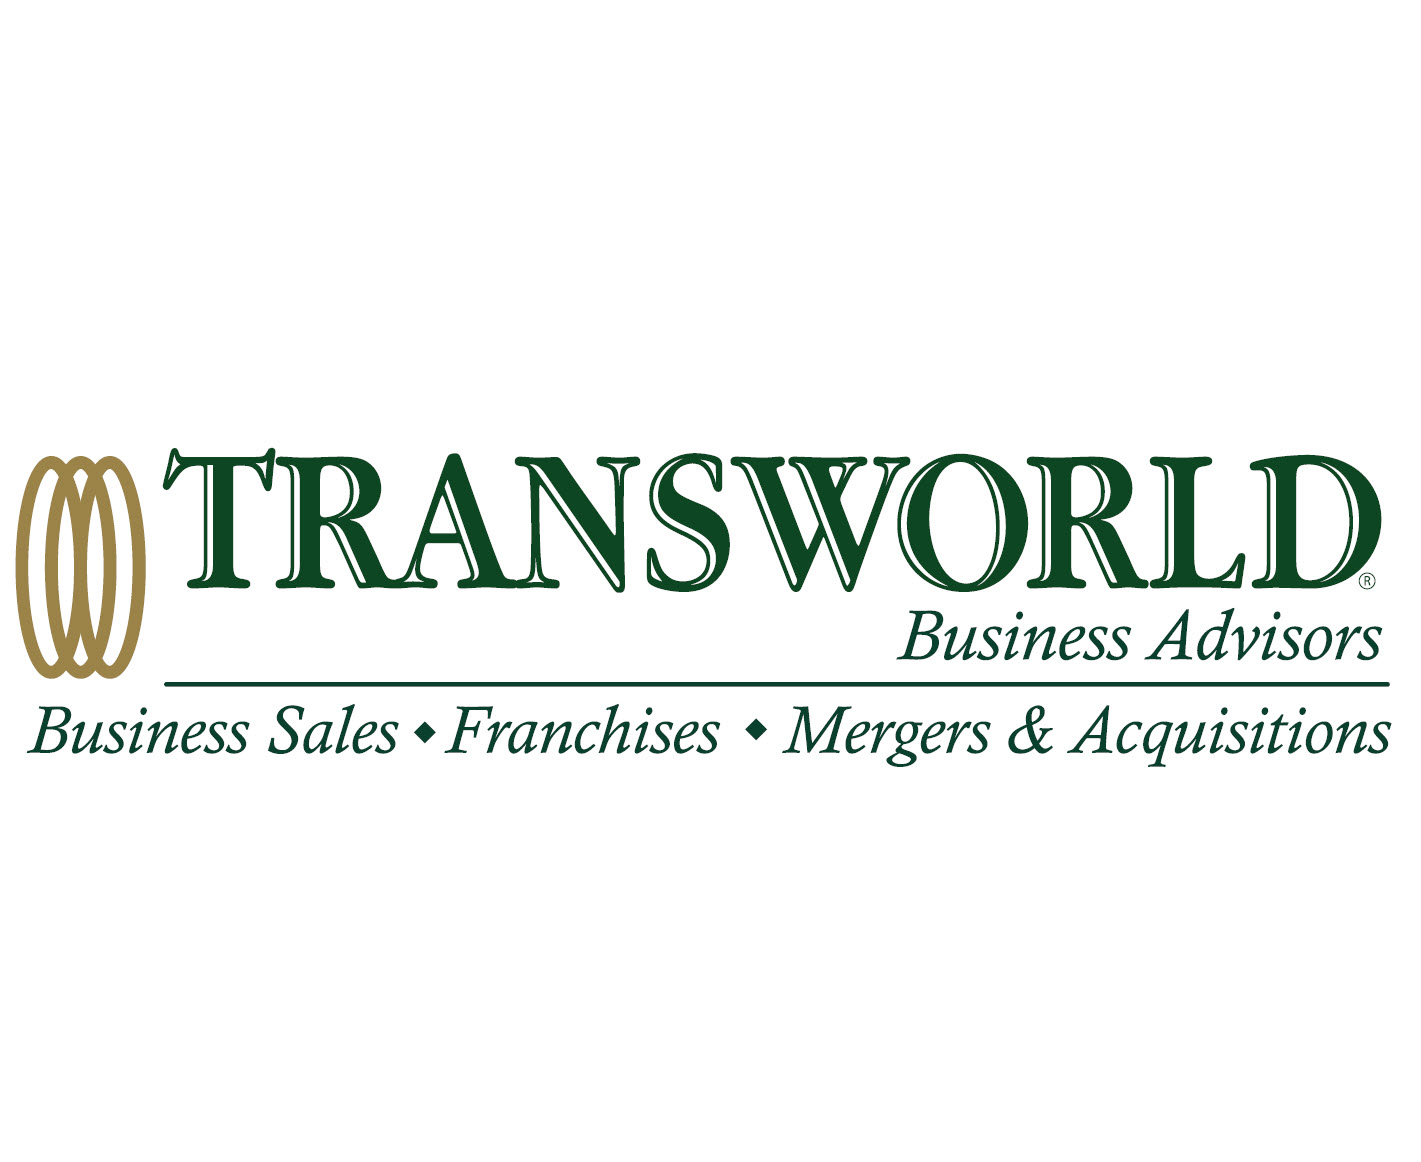 Transworld Business Advisors Manly Logo